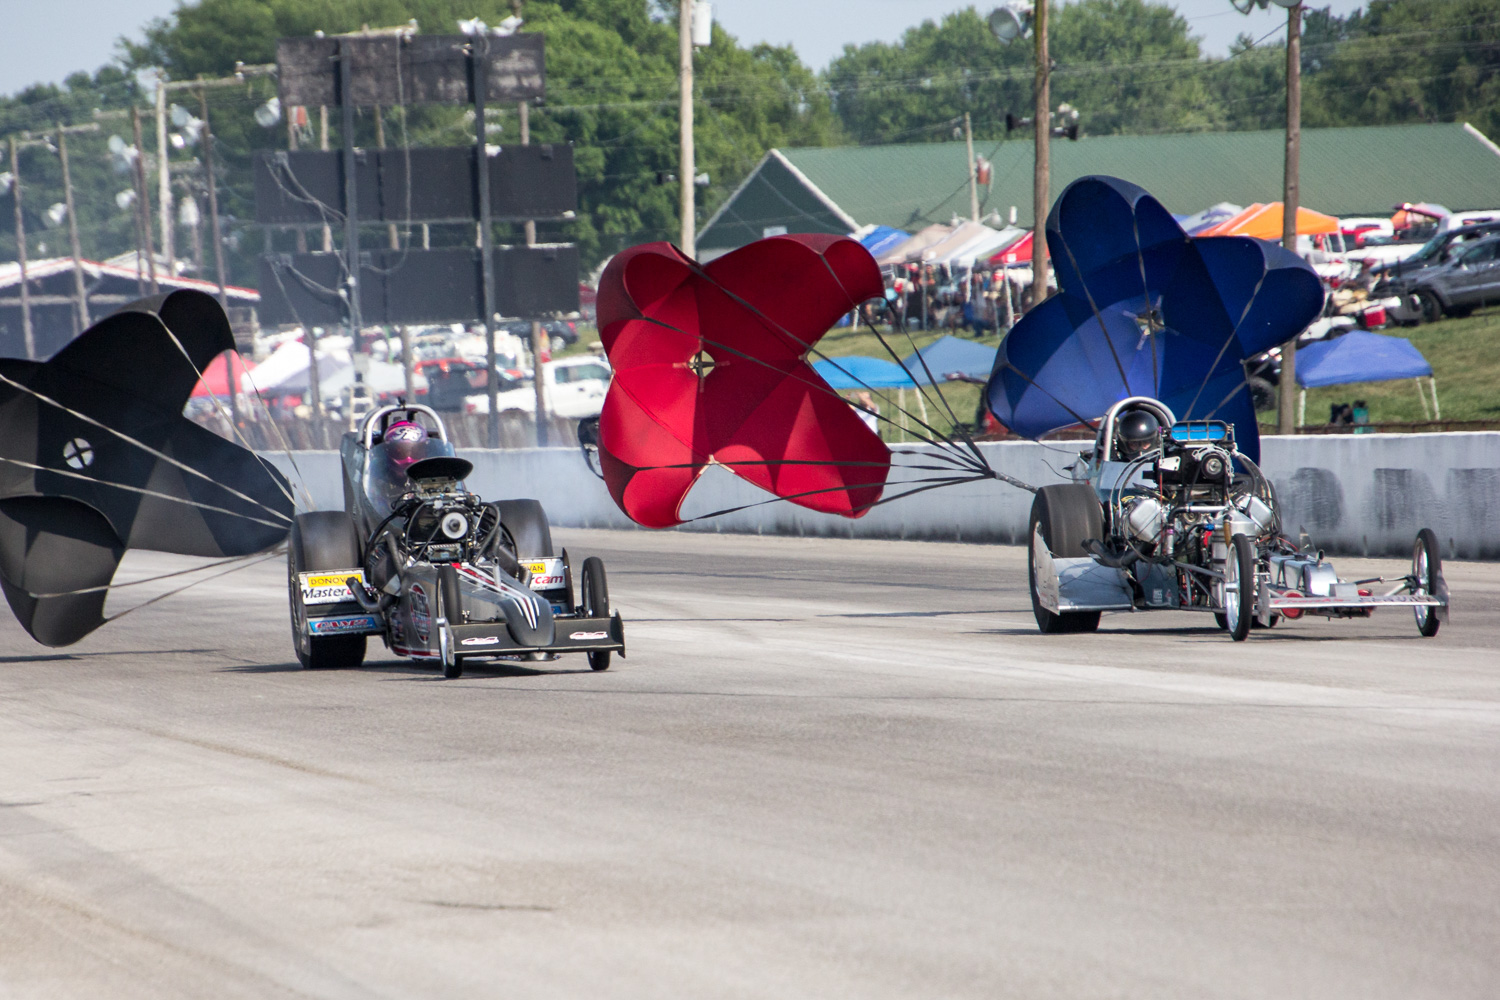 fry vs young top fuel dragster race parachutes